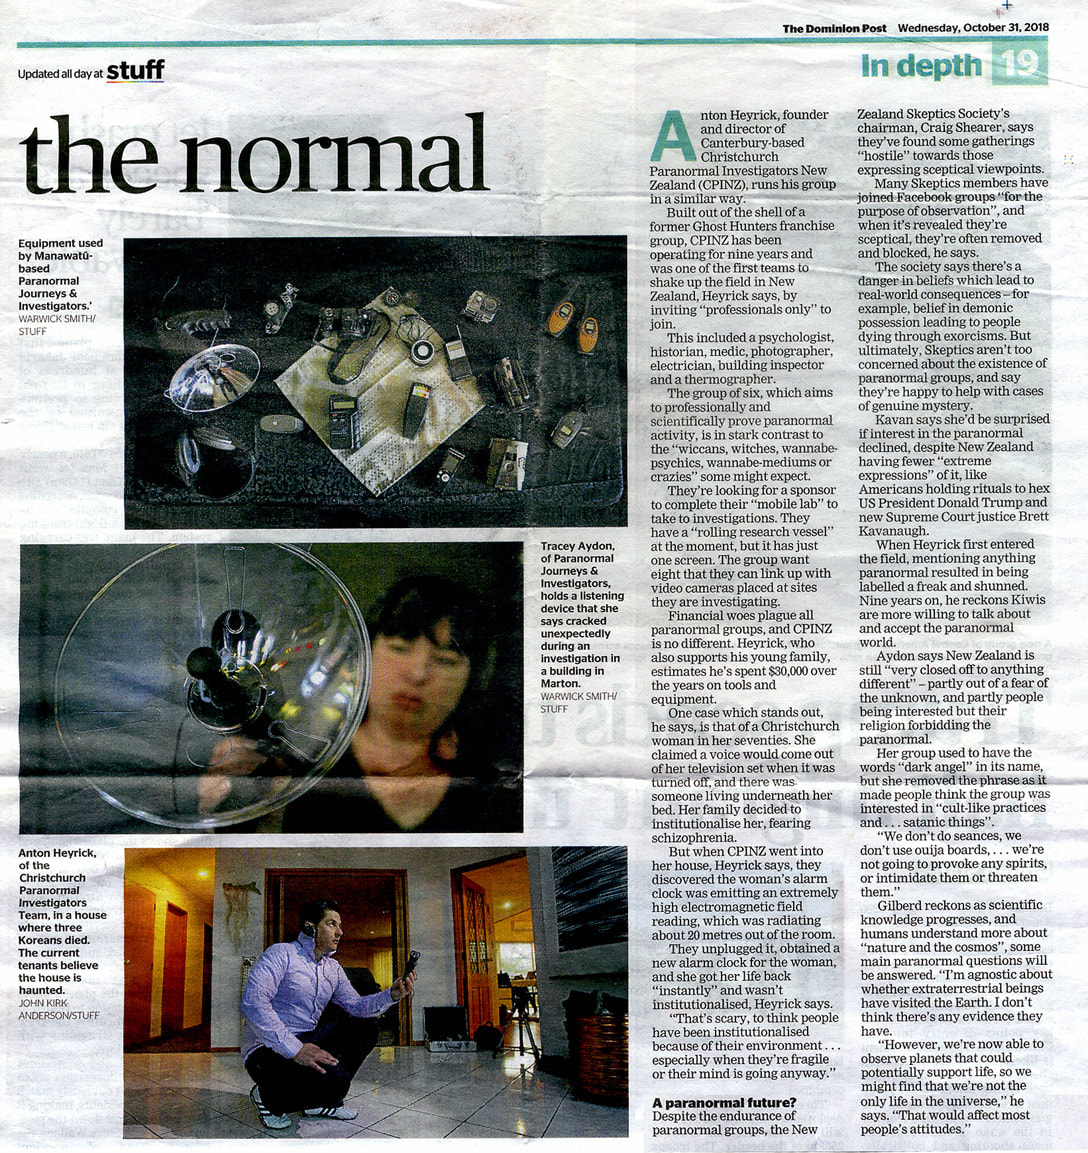 'Turning the paranormal into the normal' - Dominion Post article on the NZ paranormal scene, 31 October 2018, Andre Chumsky, New Zealand Strange Occurrences Society